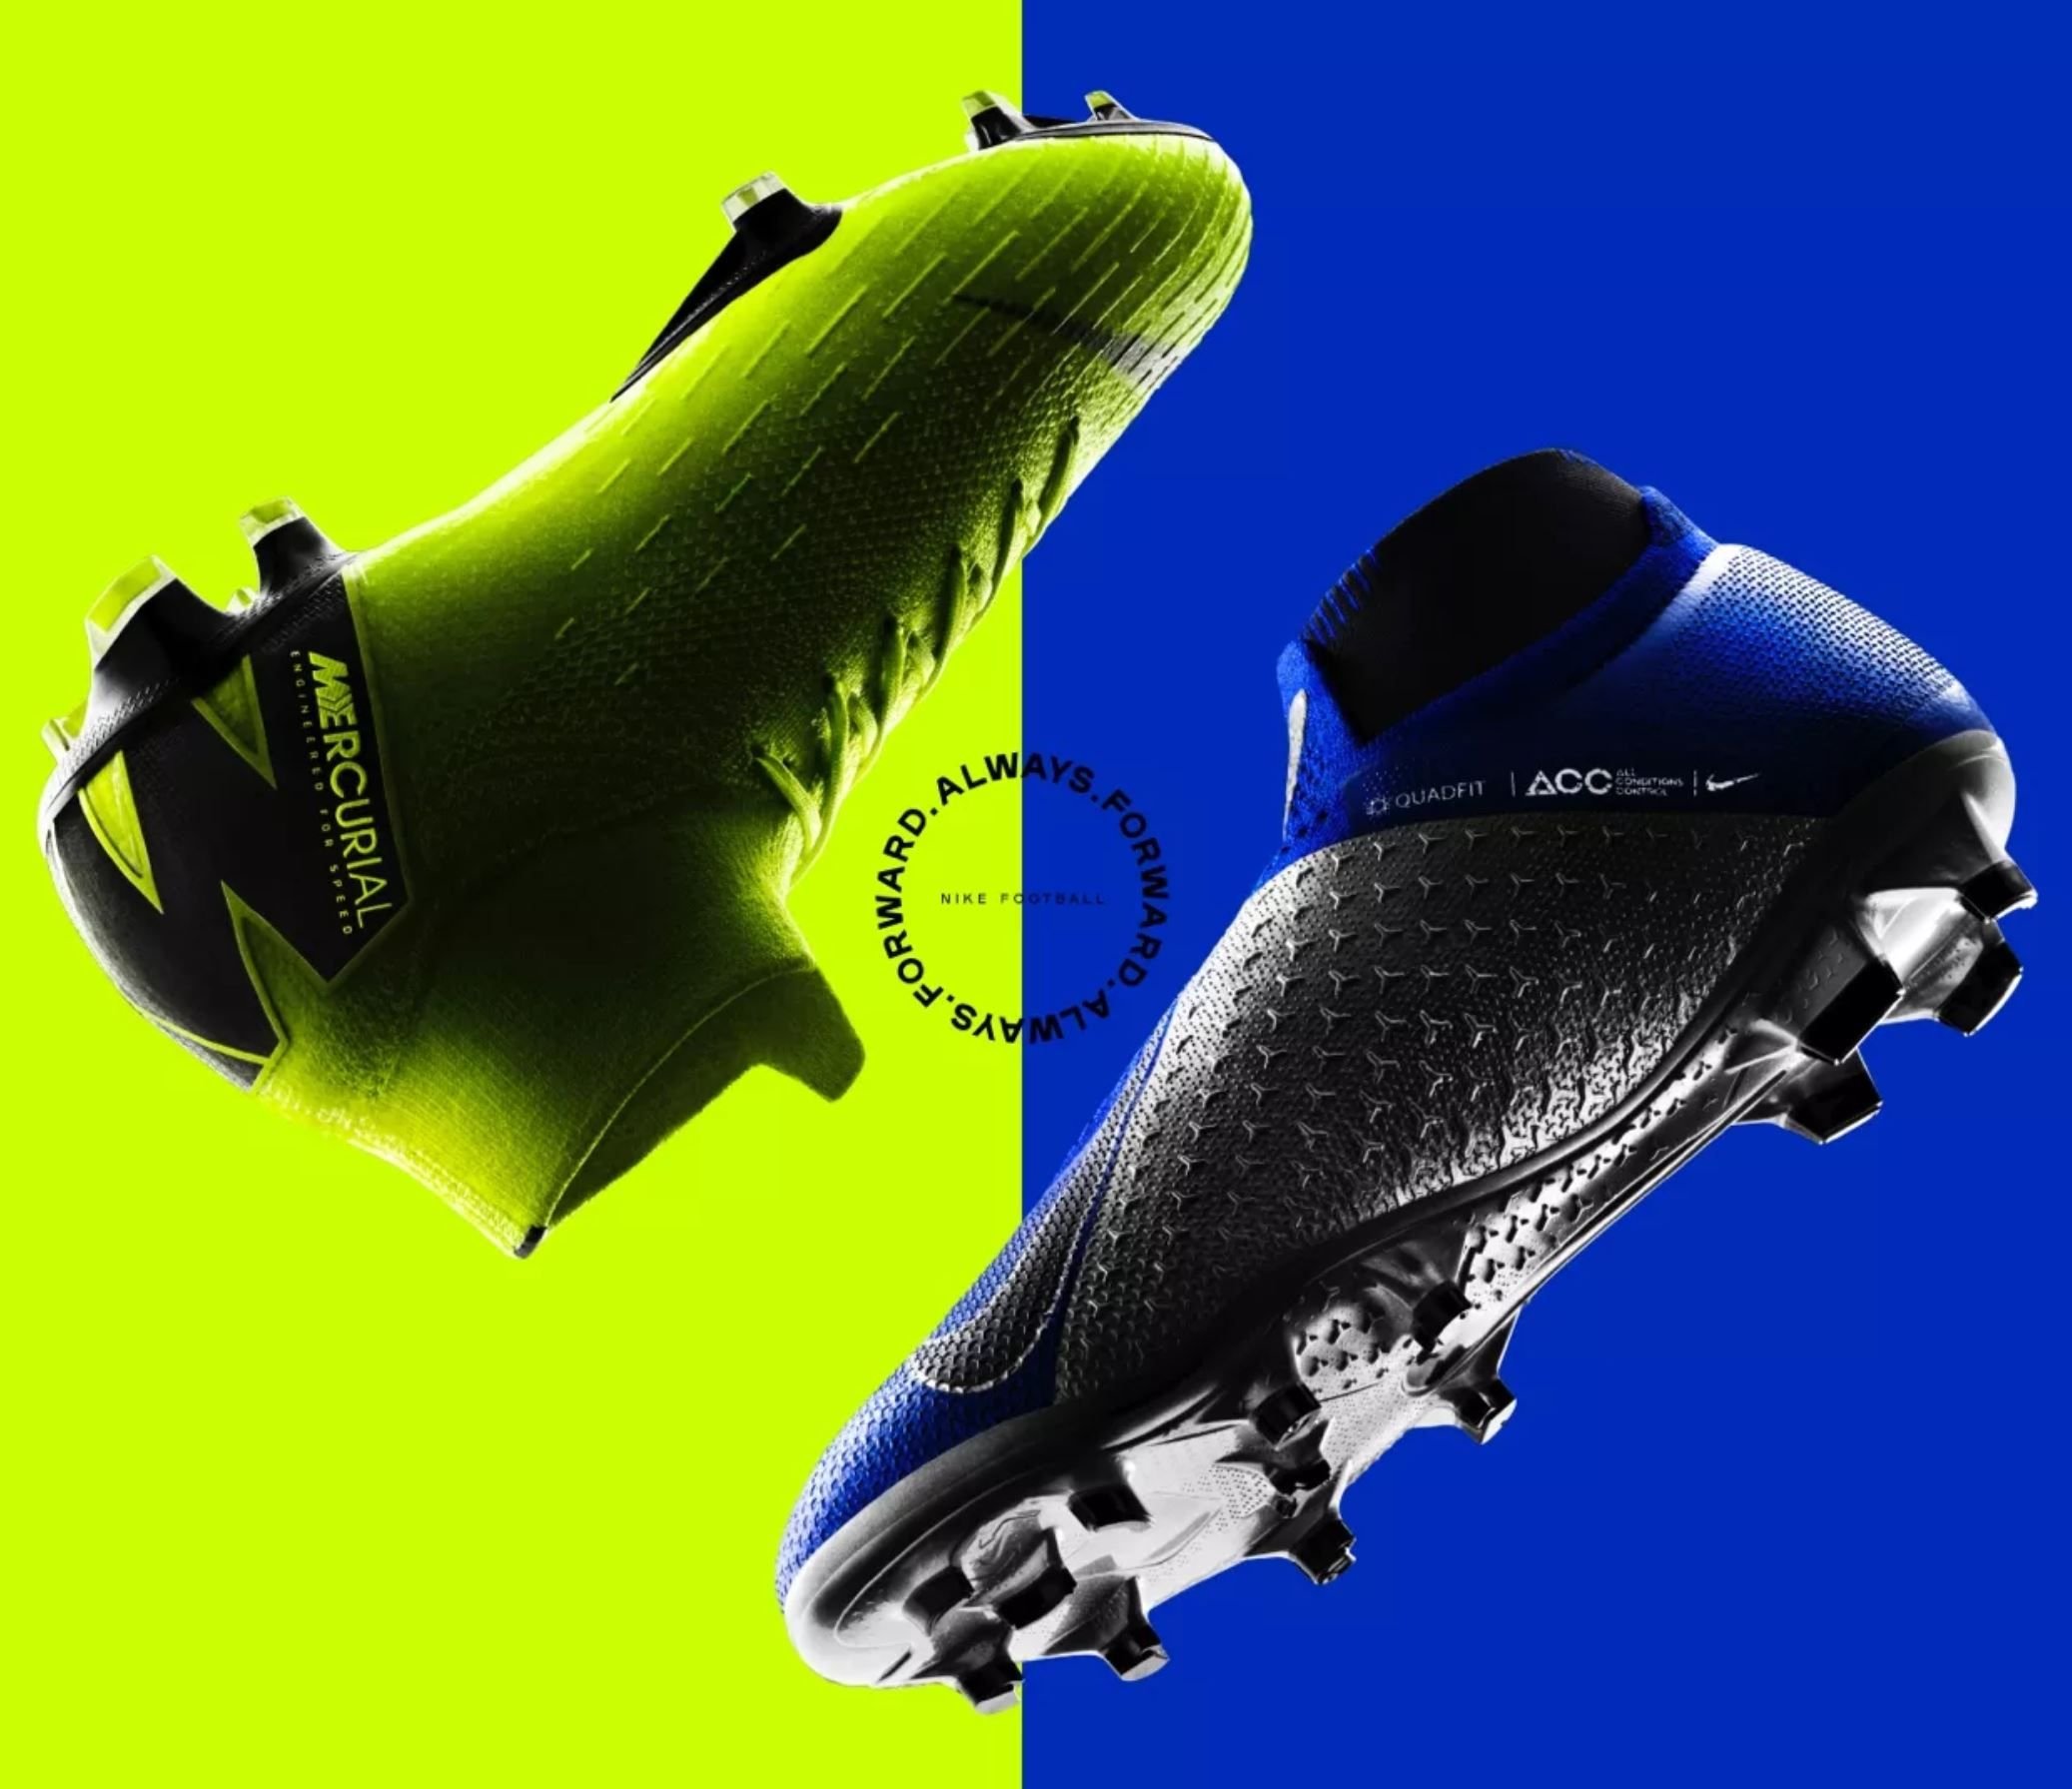 best cheap newest collection factory outlet 346 Best Everything Boots images | Soccer cleats, Boots, Cleats